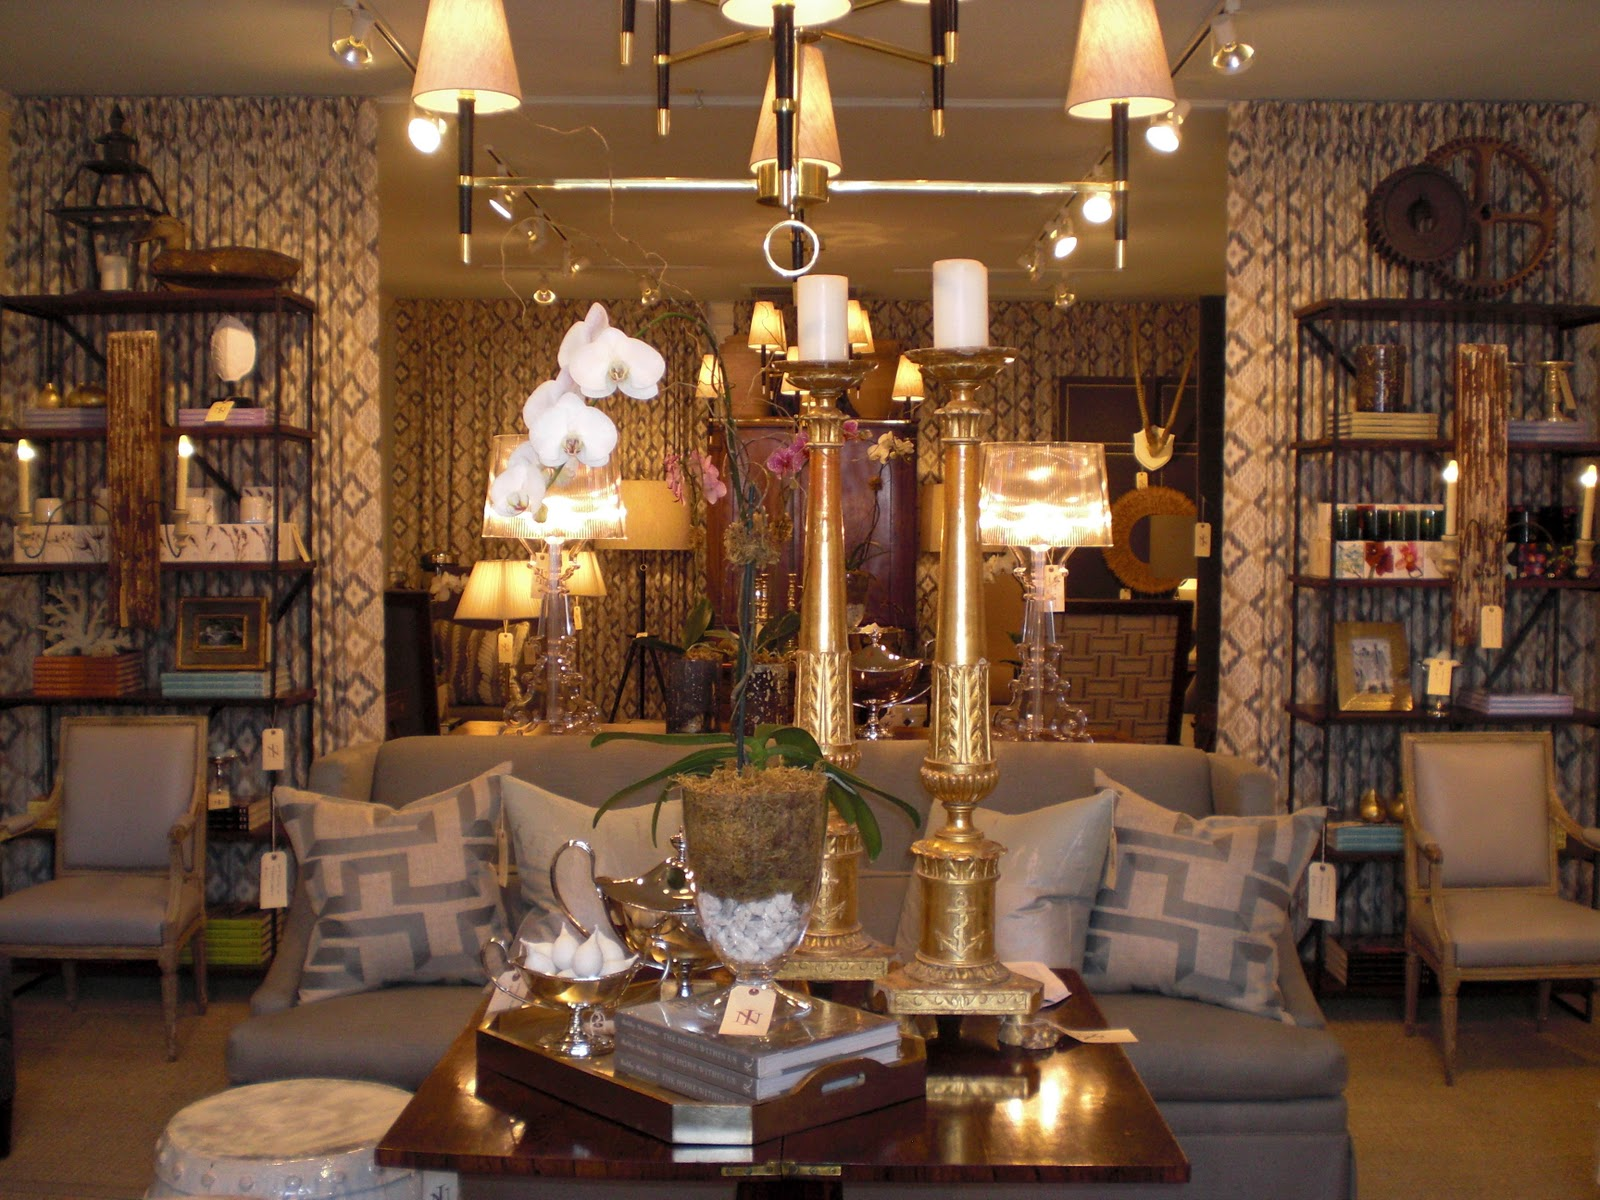 Charlestonu0027s Niche Interiors Carries A Range Of Upholstery, Antiques,  Lighting, Original Art And Smalls.